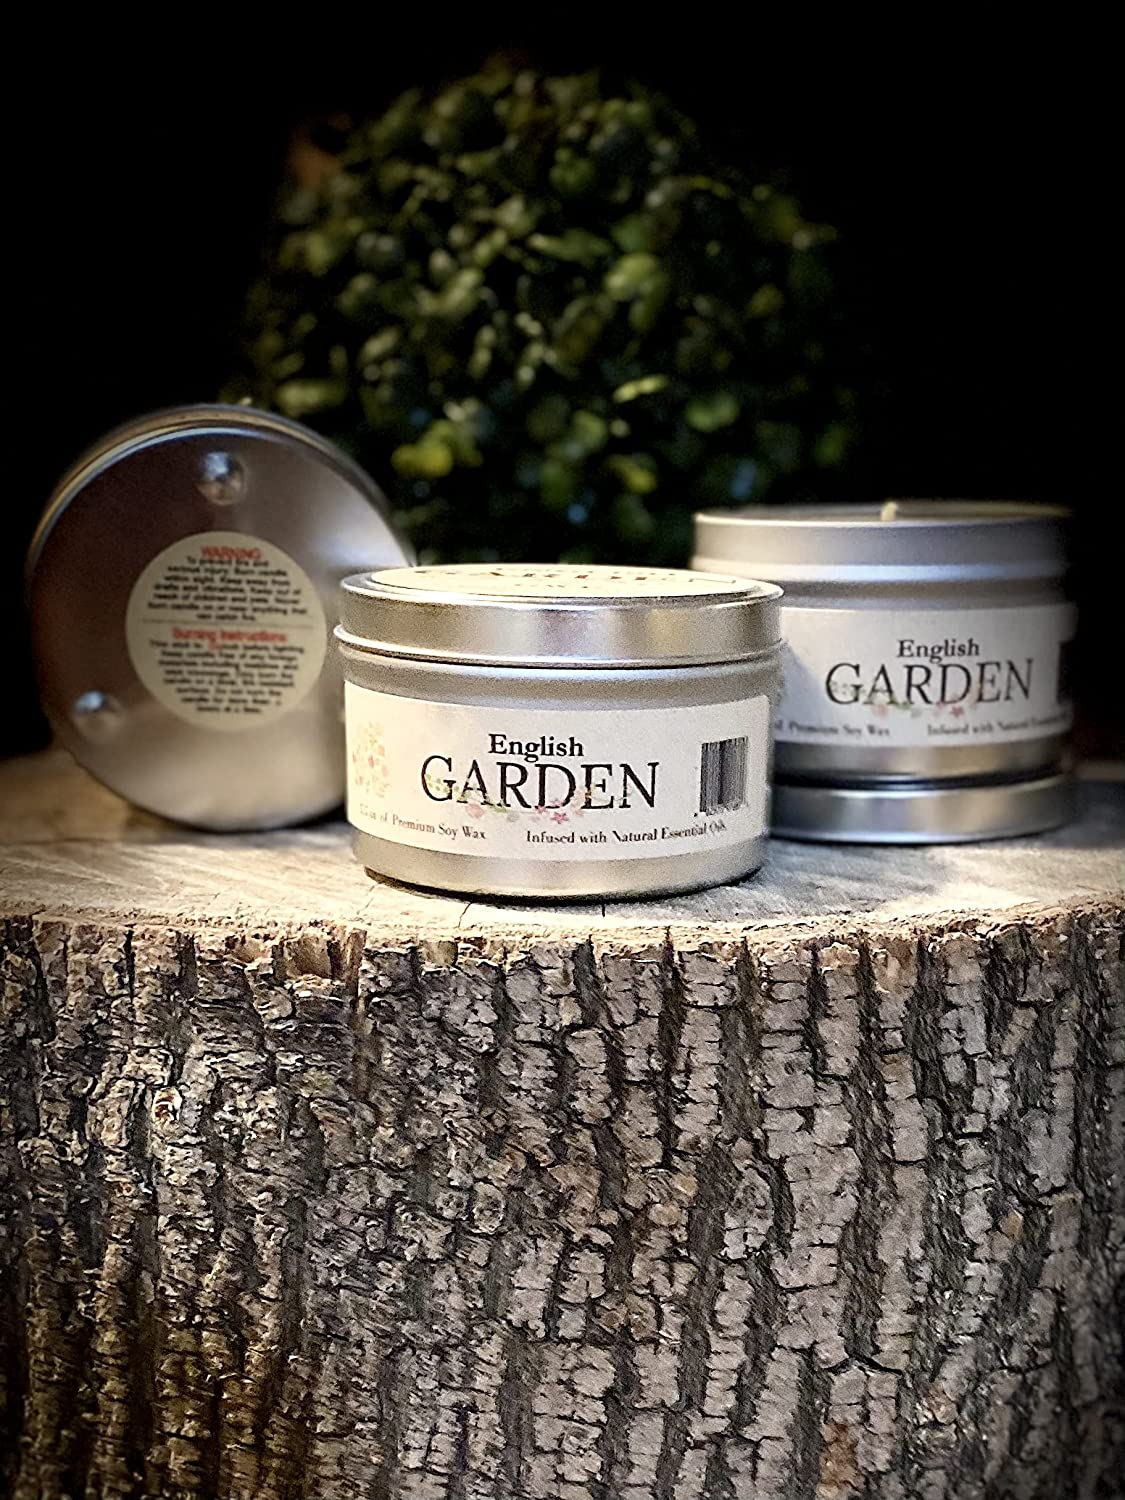 GWE English Garden Floral Aromatherapy Soy Candle for Stress Relief, Relaxation, Anxiety, Comfort & Sleep- Mixed Scents of Lilac, Rose & Jasmine-Soy Wax Infused w/Natural Oils, Made in The U.S.A